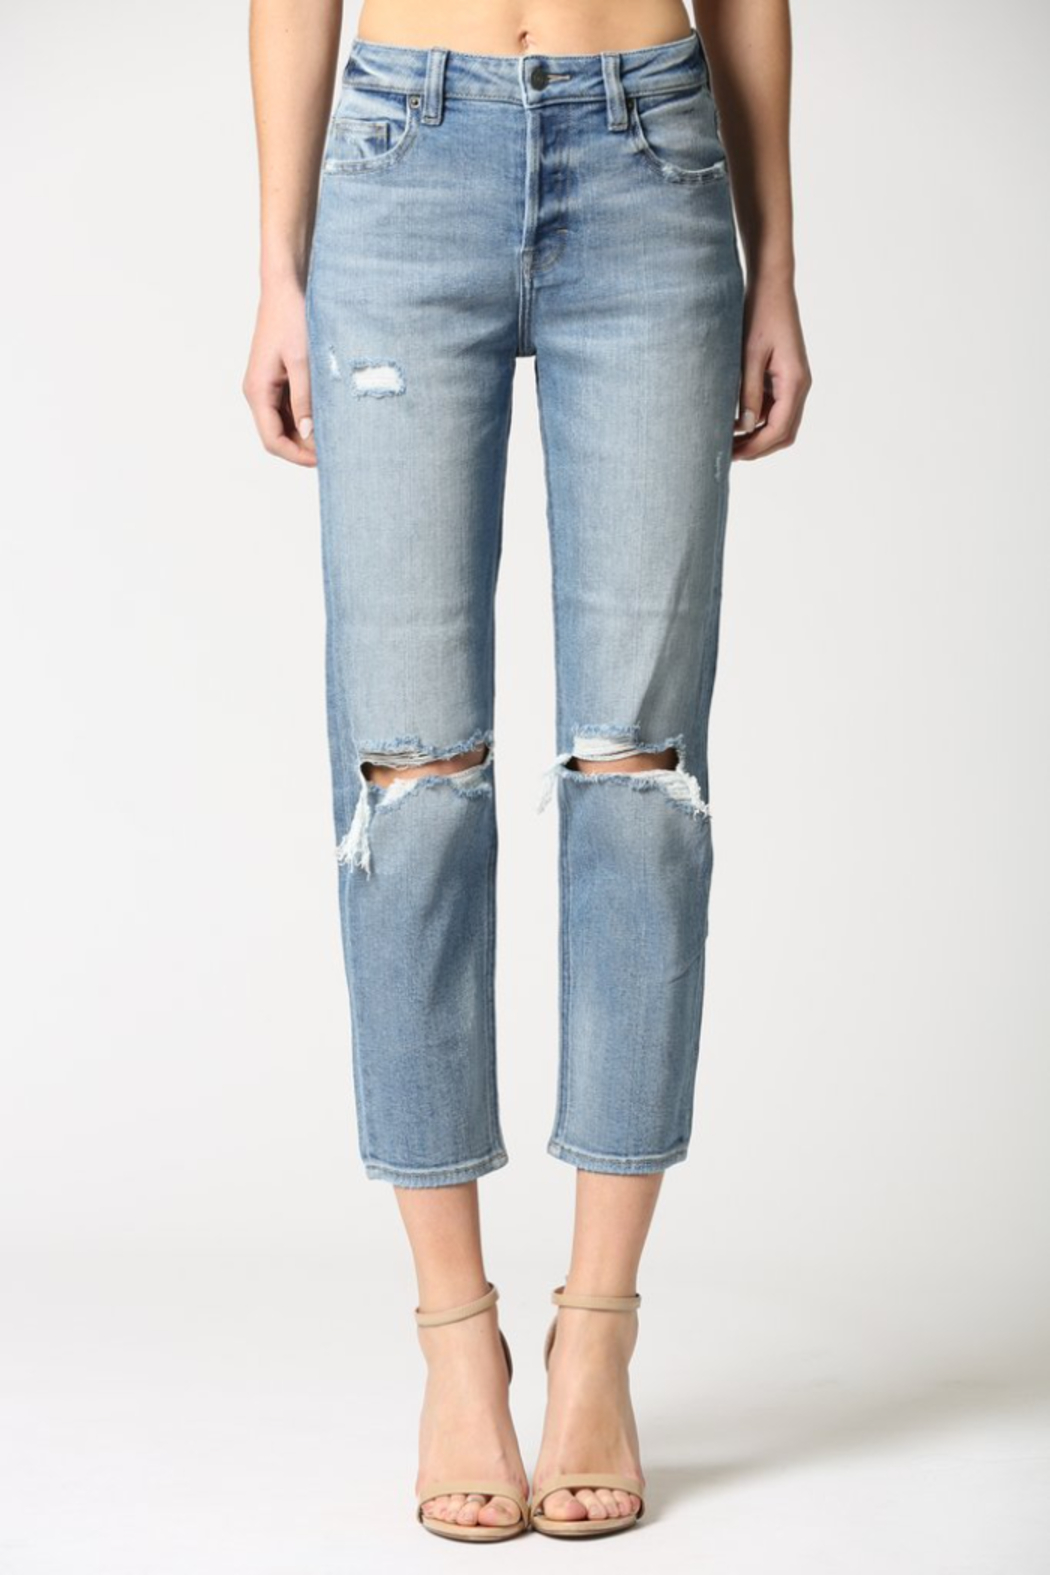 Hidden Jeans Zoey Distressed Mom Jeans - Main Image